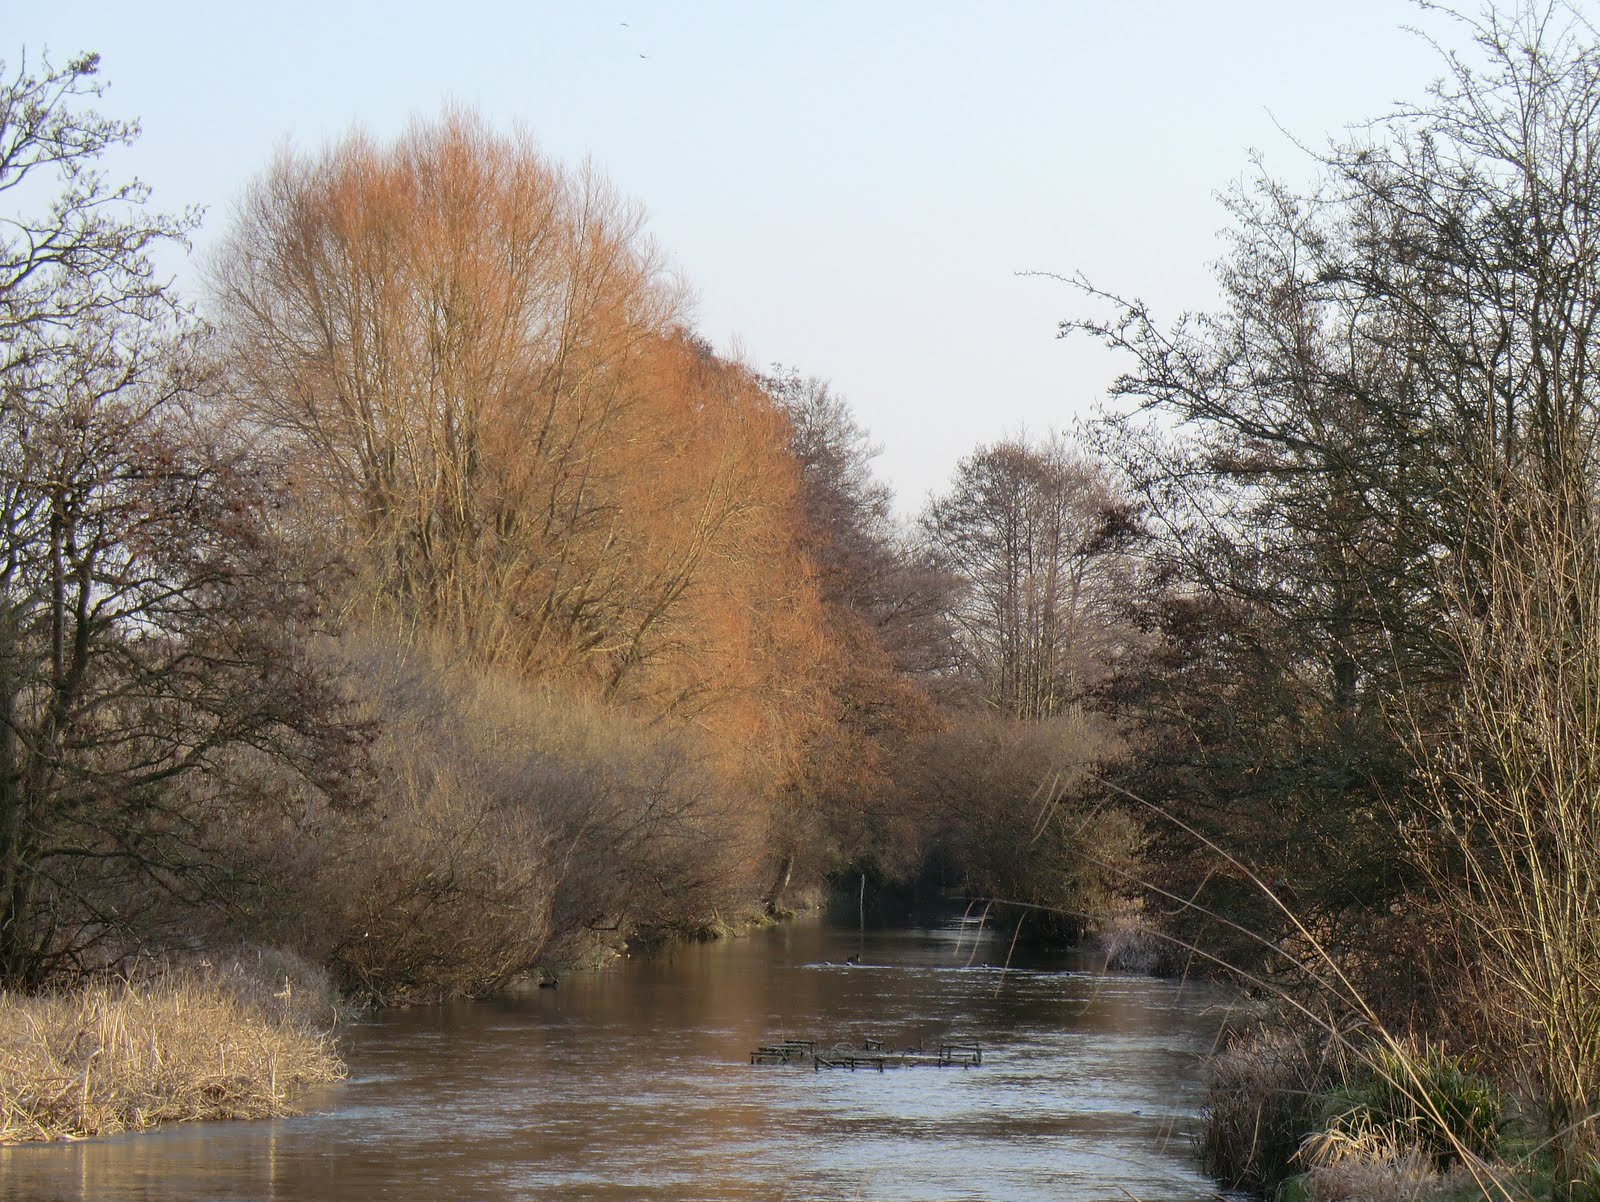 CIMG1726 River Test at Whitchurch